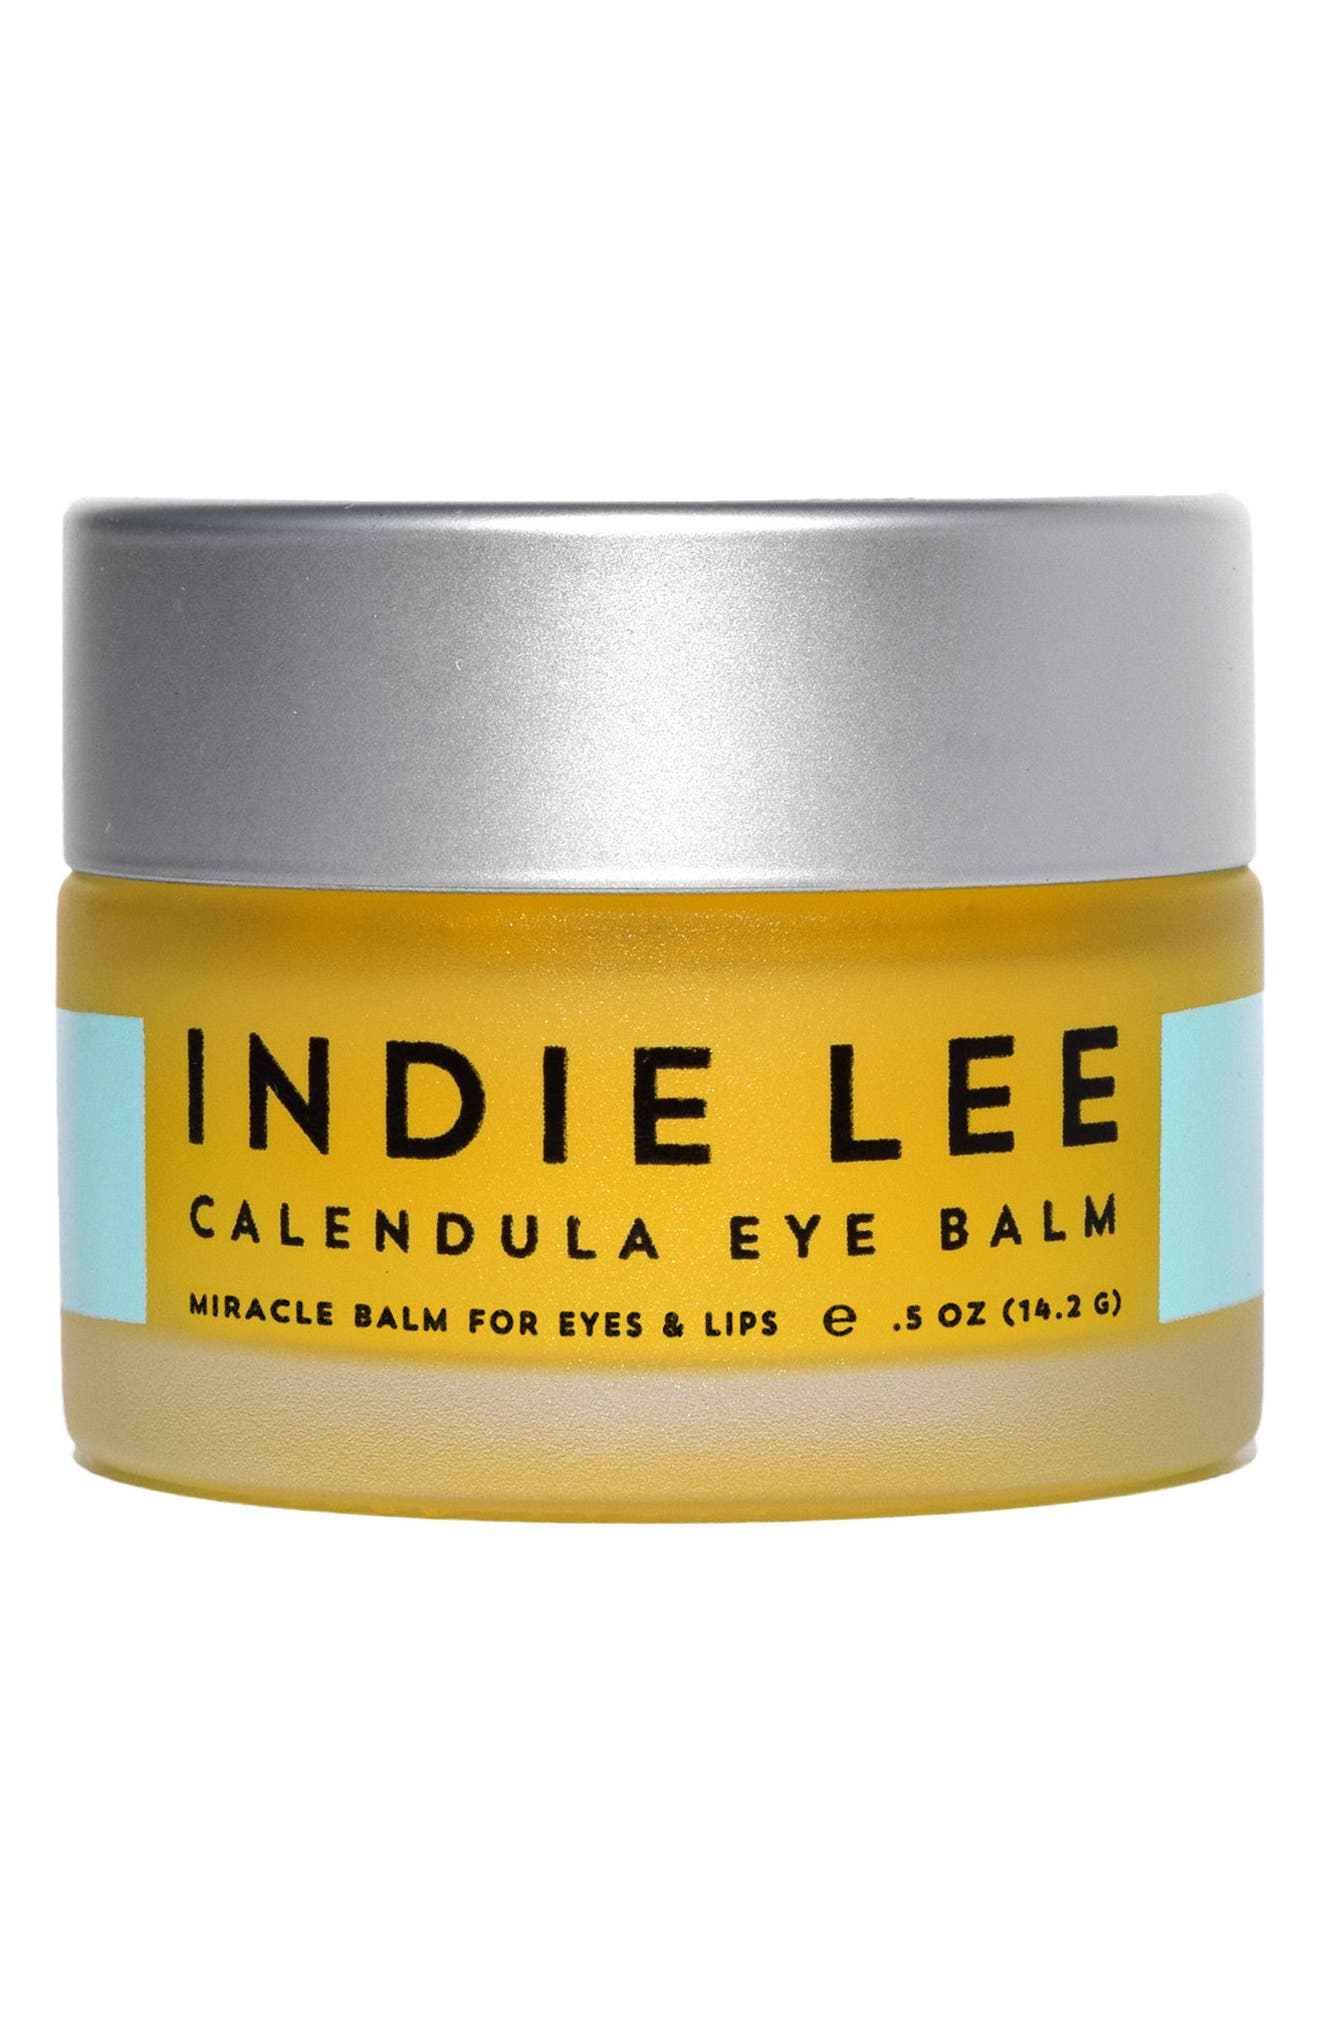 Calendula Eye Balm,                             Main thumbnail 1, color,                             No Color